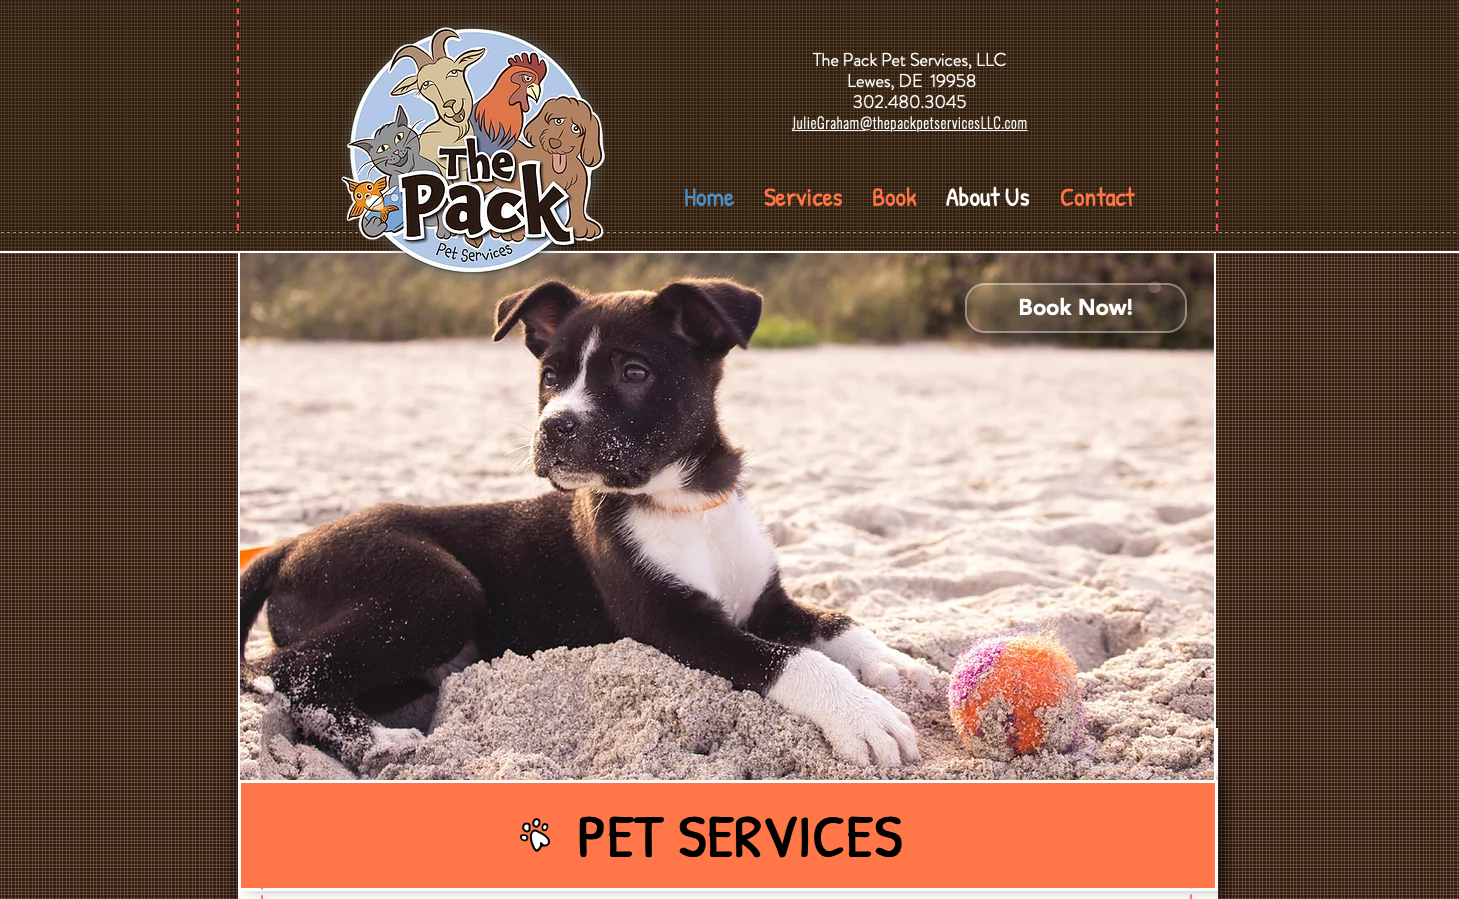 The Pack Pet Services, LLC